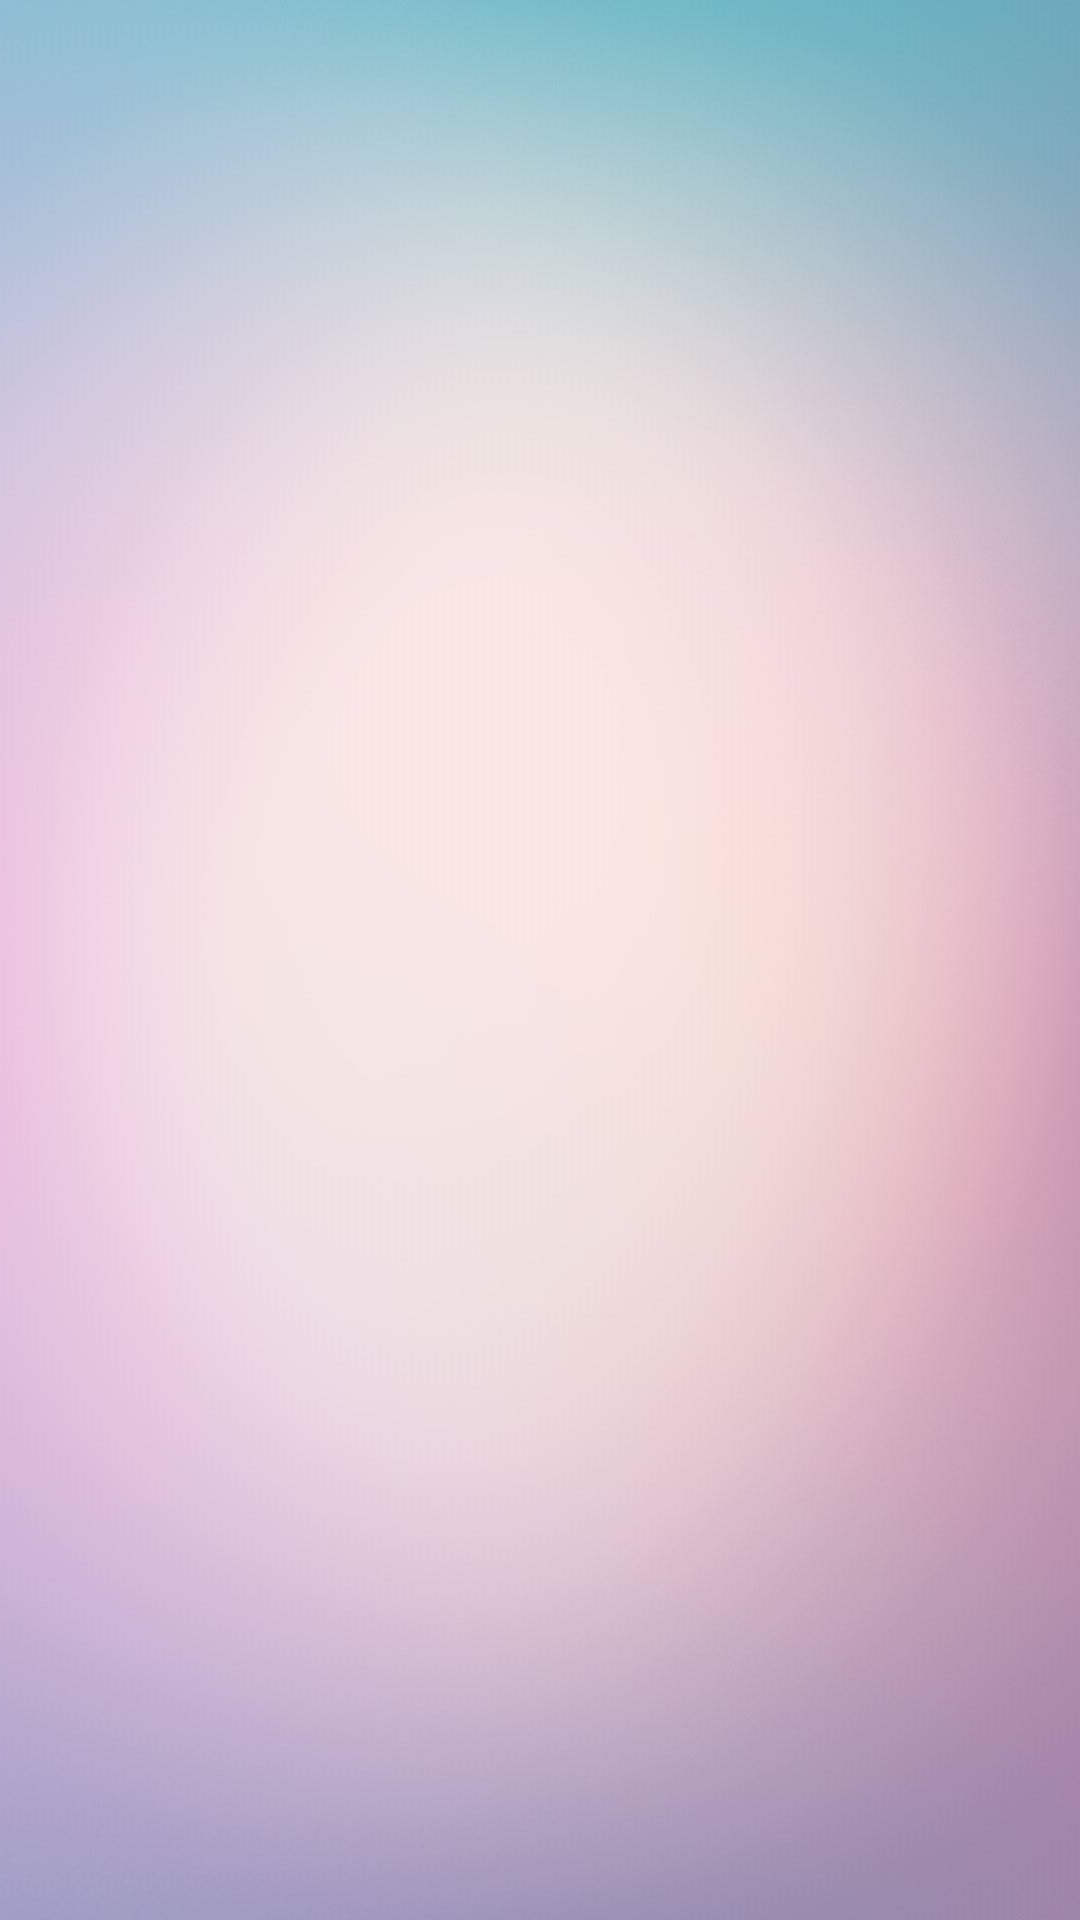 Calming-Blurred-Background-Calming-blurred-lights-and-gradients-for-iPhone-mobile-wallpaper-wp3403687